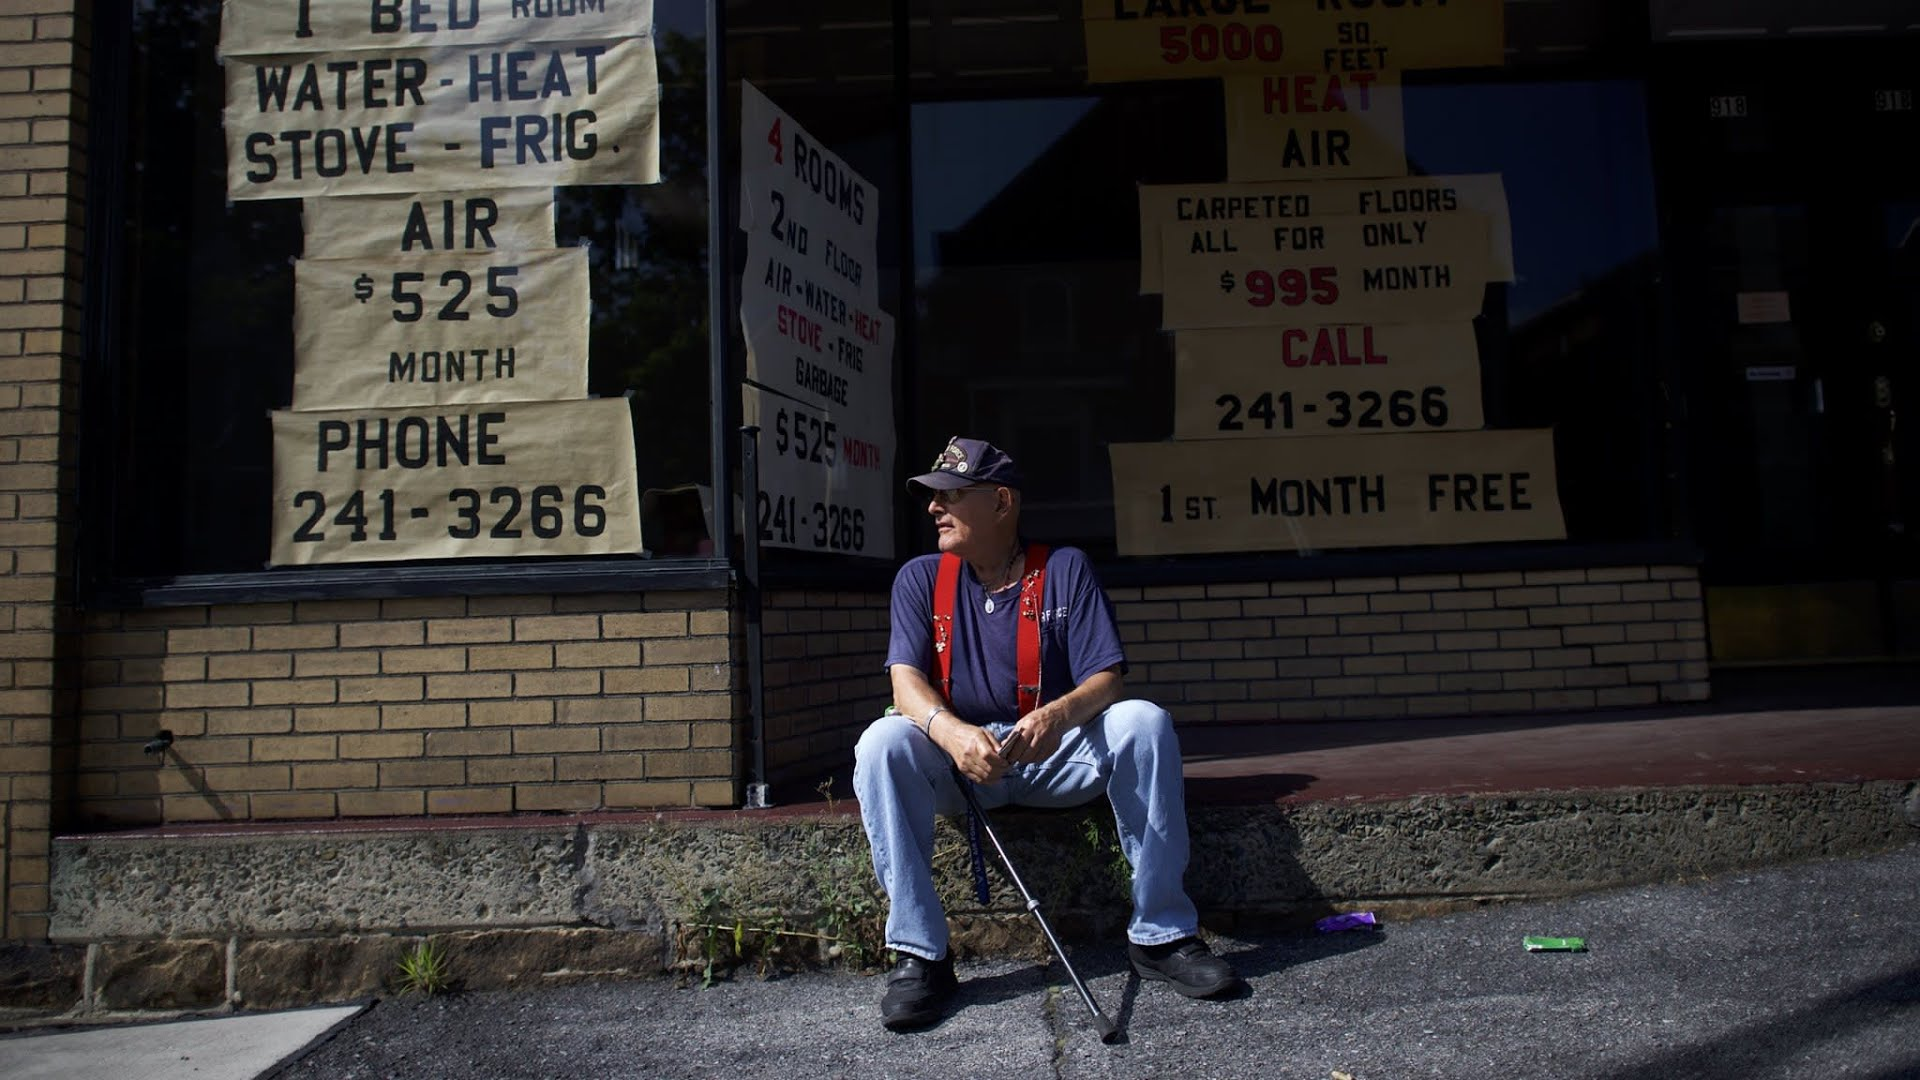 WINDBER, PA - AUGUST 13: Air Force veteran Nick Ferrante, 77, waits for a bus on August 13, 2016 in Windber, Pennsylvania. The small Western Pennsylvania town of just over 4,000 residents was founded as a company town for nearby coal mines, most of which have closed. 11.1% of the population now exists below the poverty line, with a median household income of $23,261. Republican Presidential candidate Donald Trump has been holding rallies in the state frequently, as he targets Pennsylvania's 20 delegates, the 5th largest total nationwide. (Photo by Mark Makela/Getty Images)